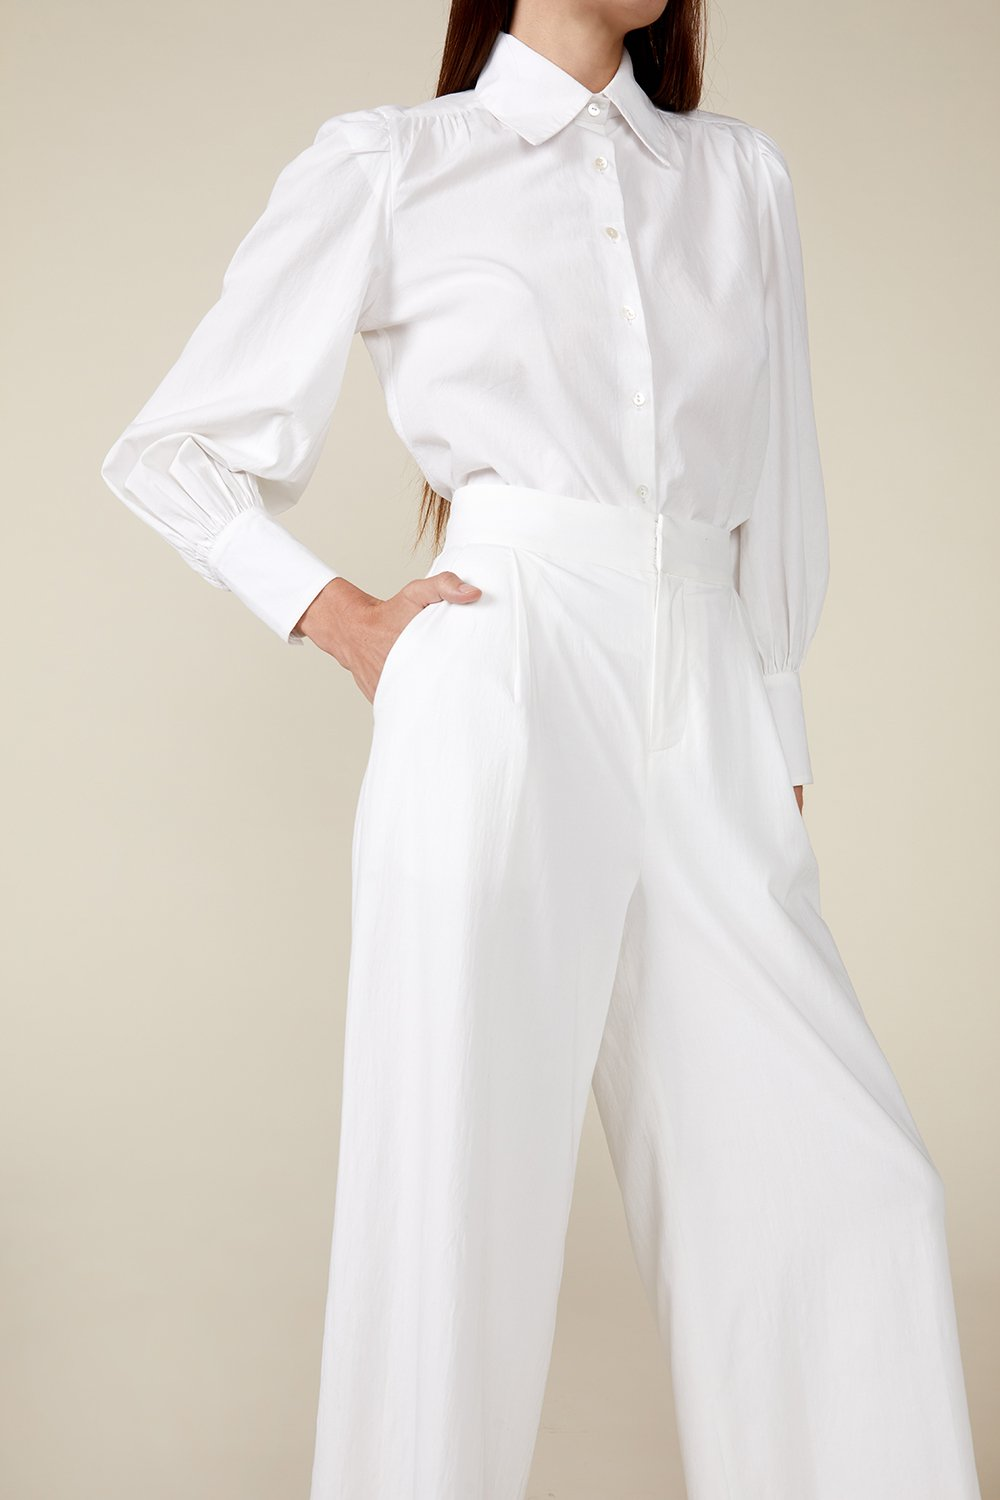 VITA BLOUSE, WHITE by St. Roche - 5